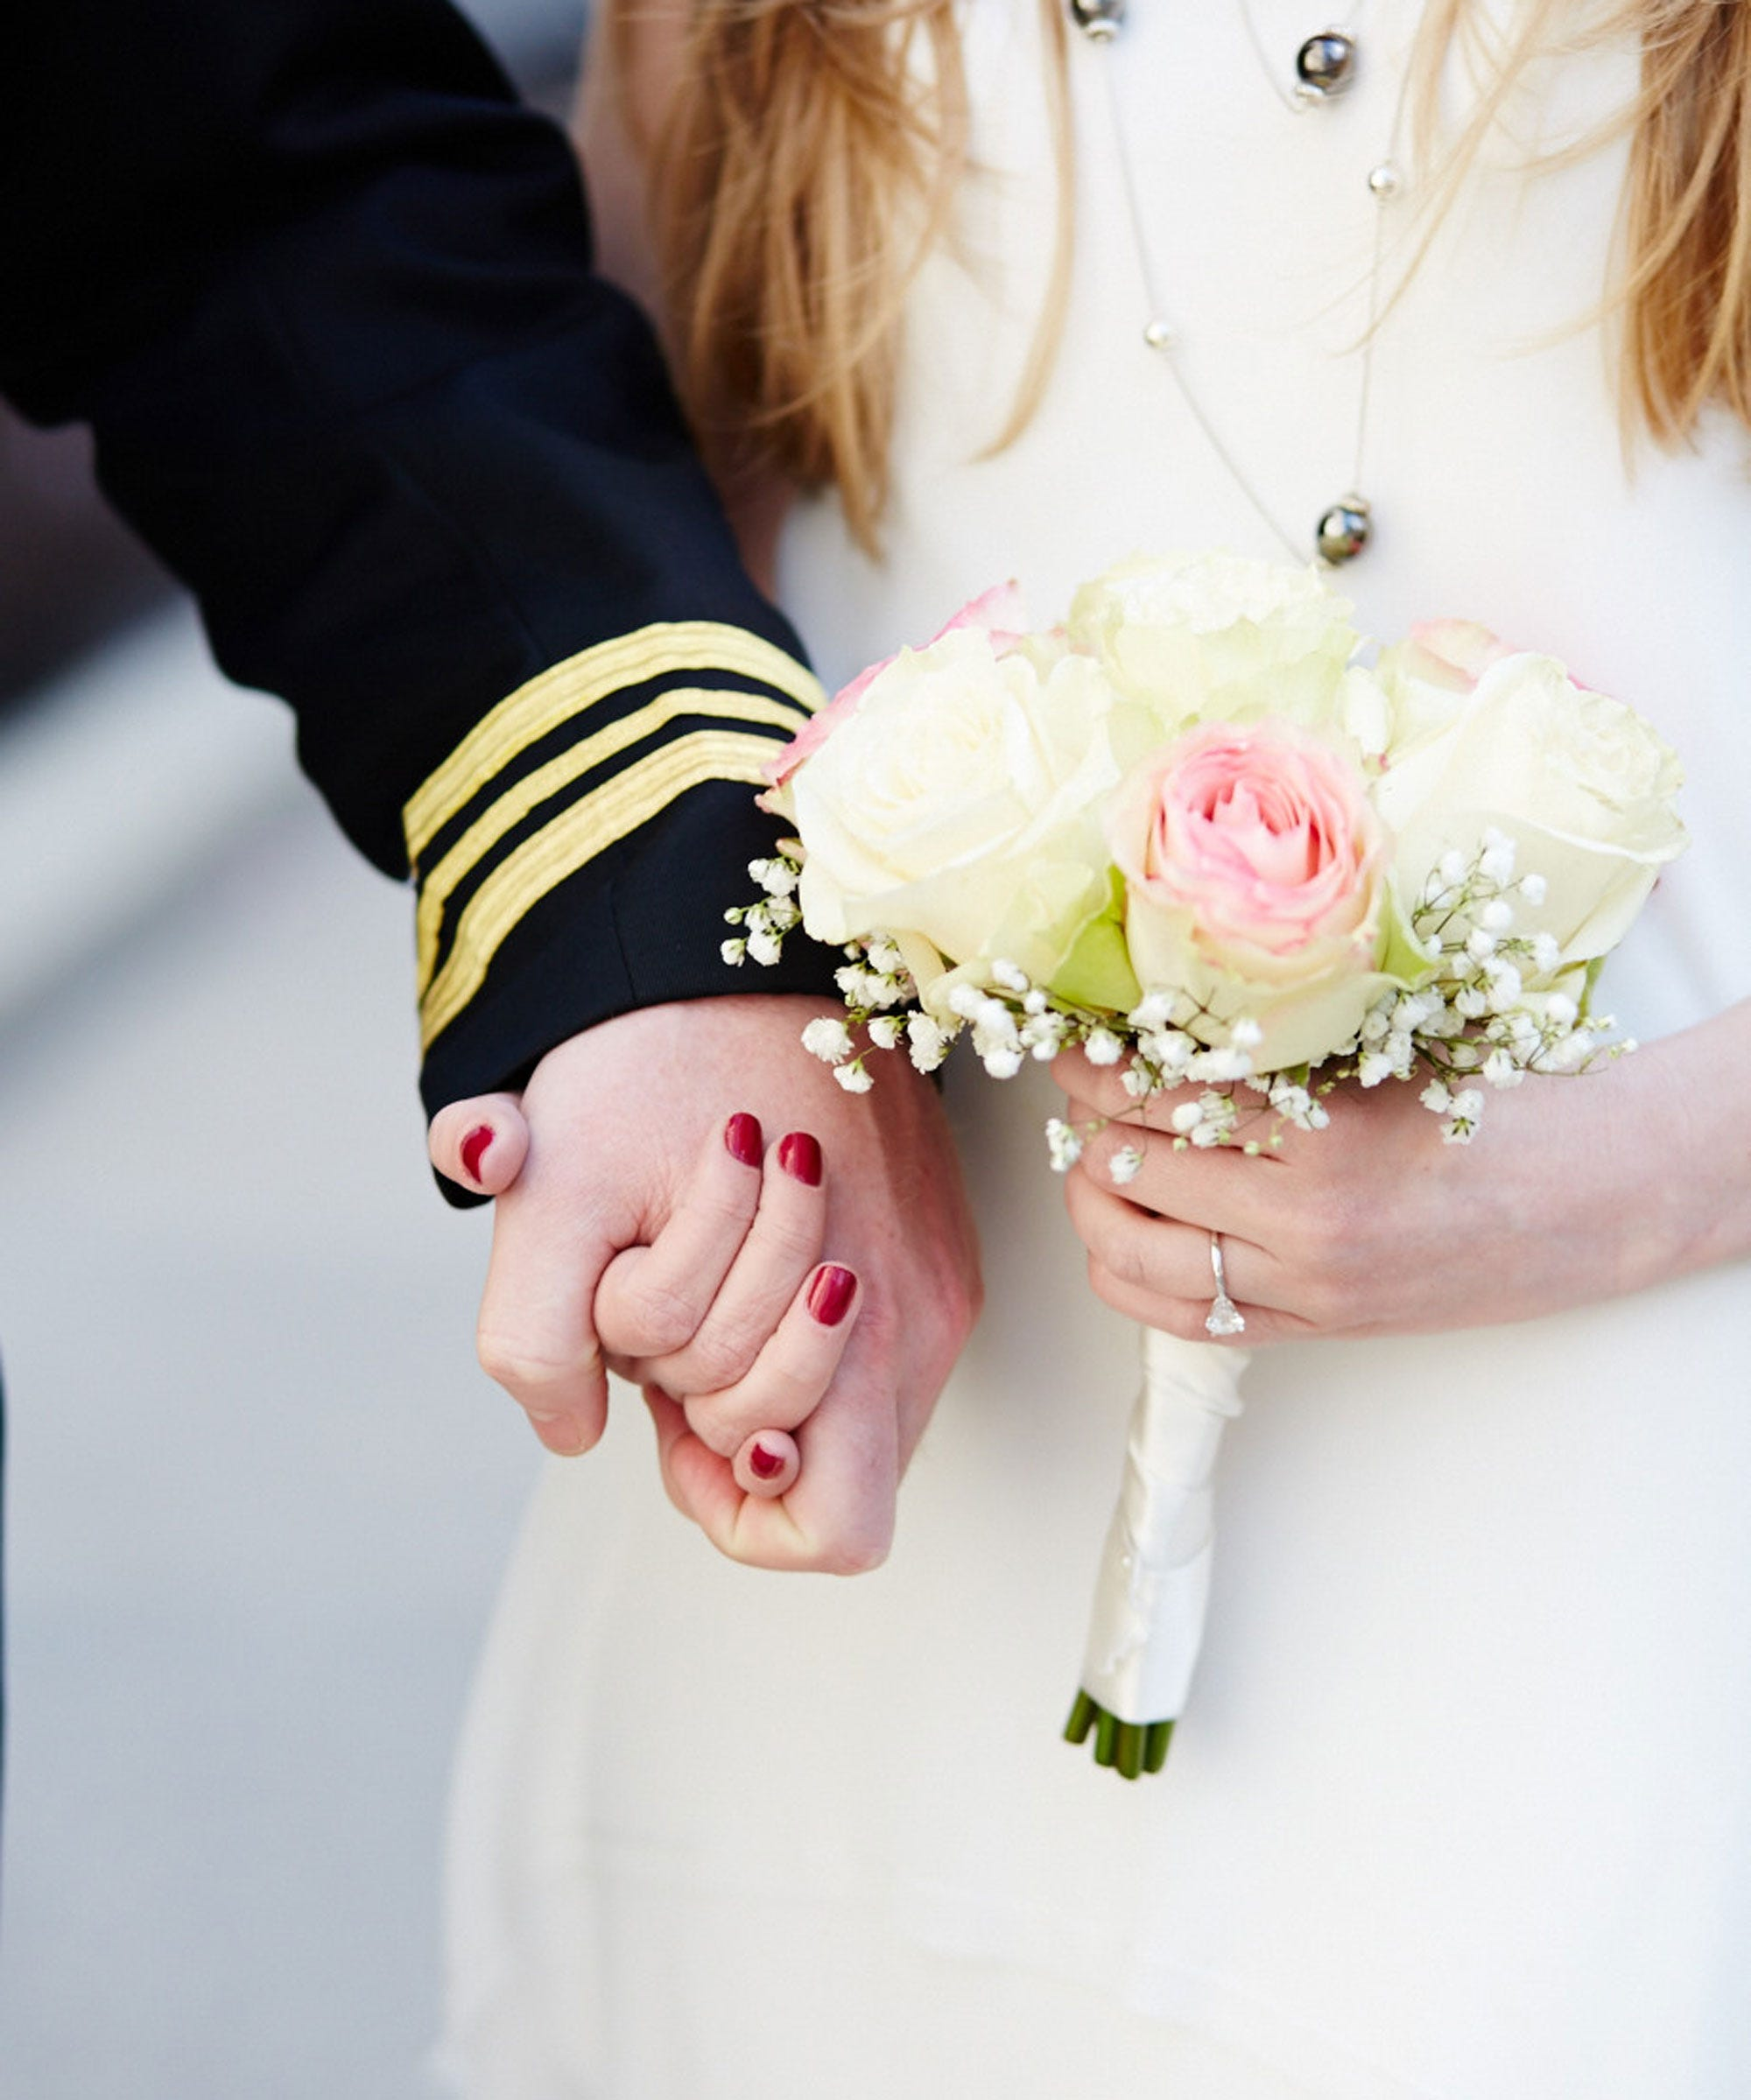 How Much To Spend On Wedding Gift